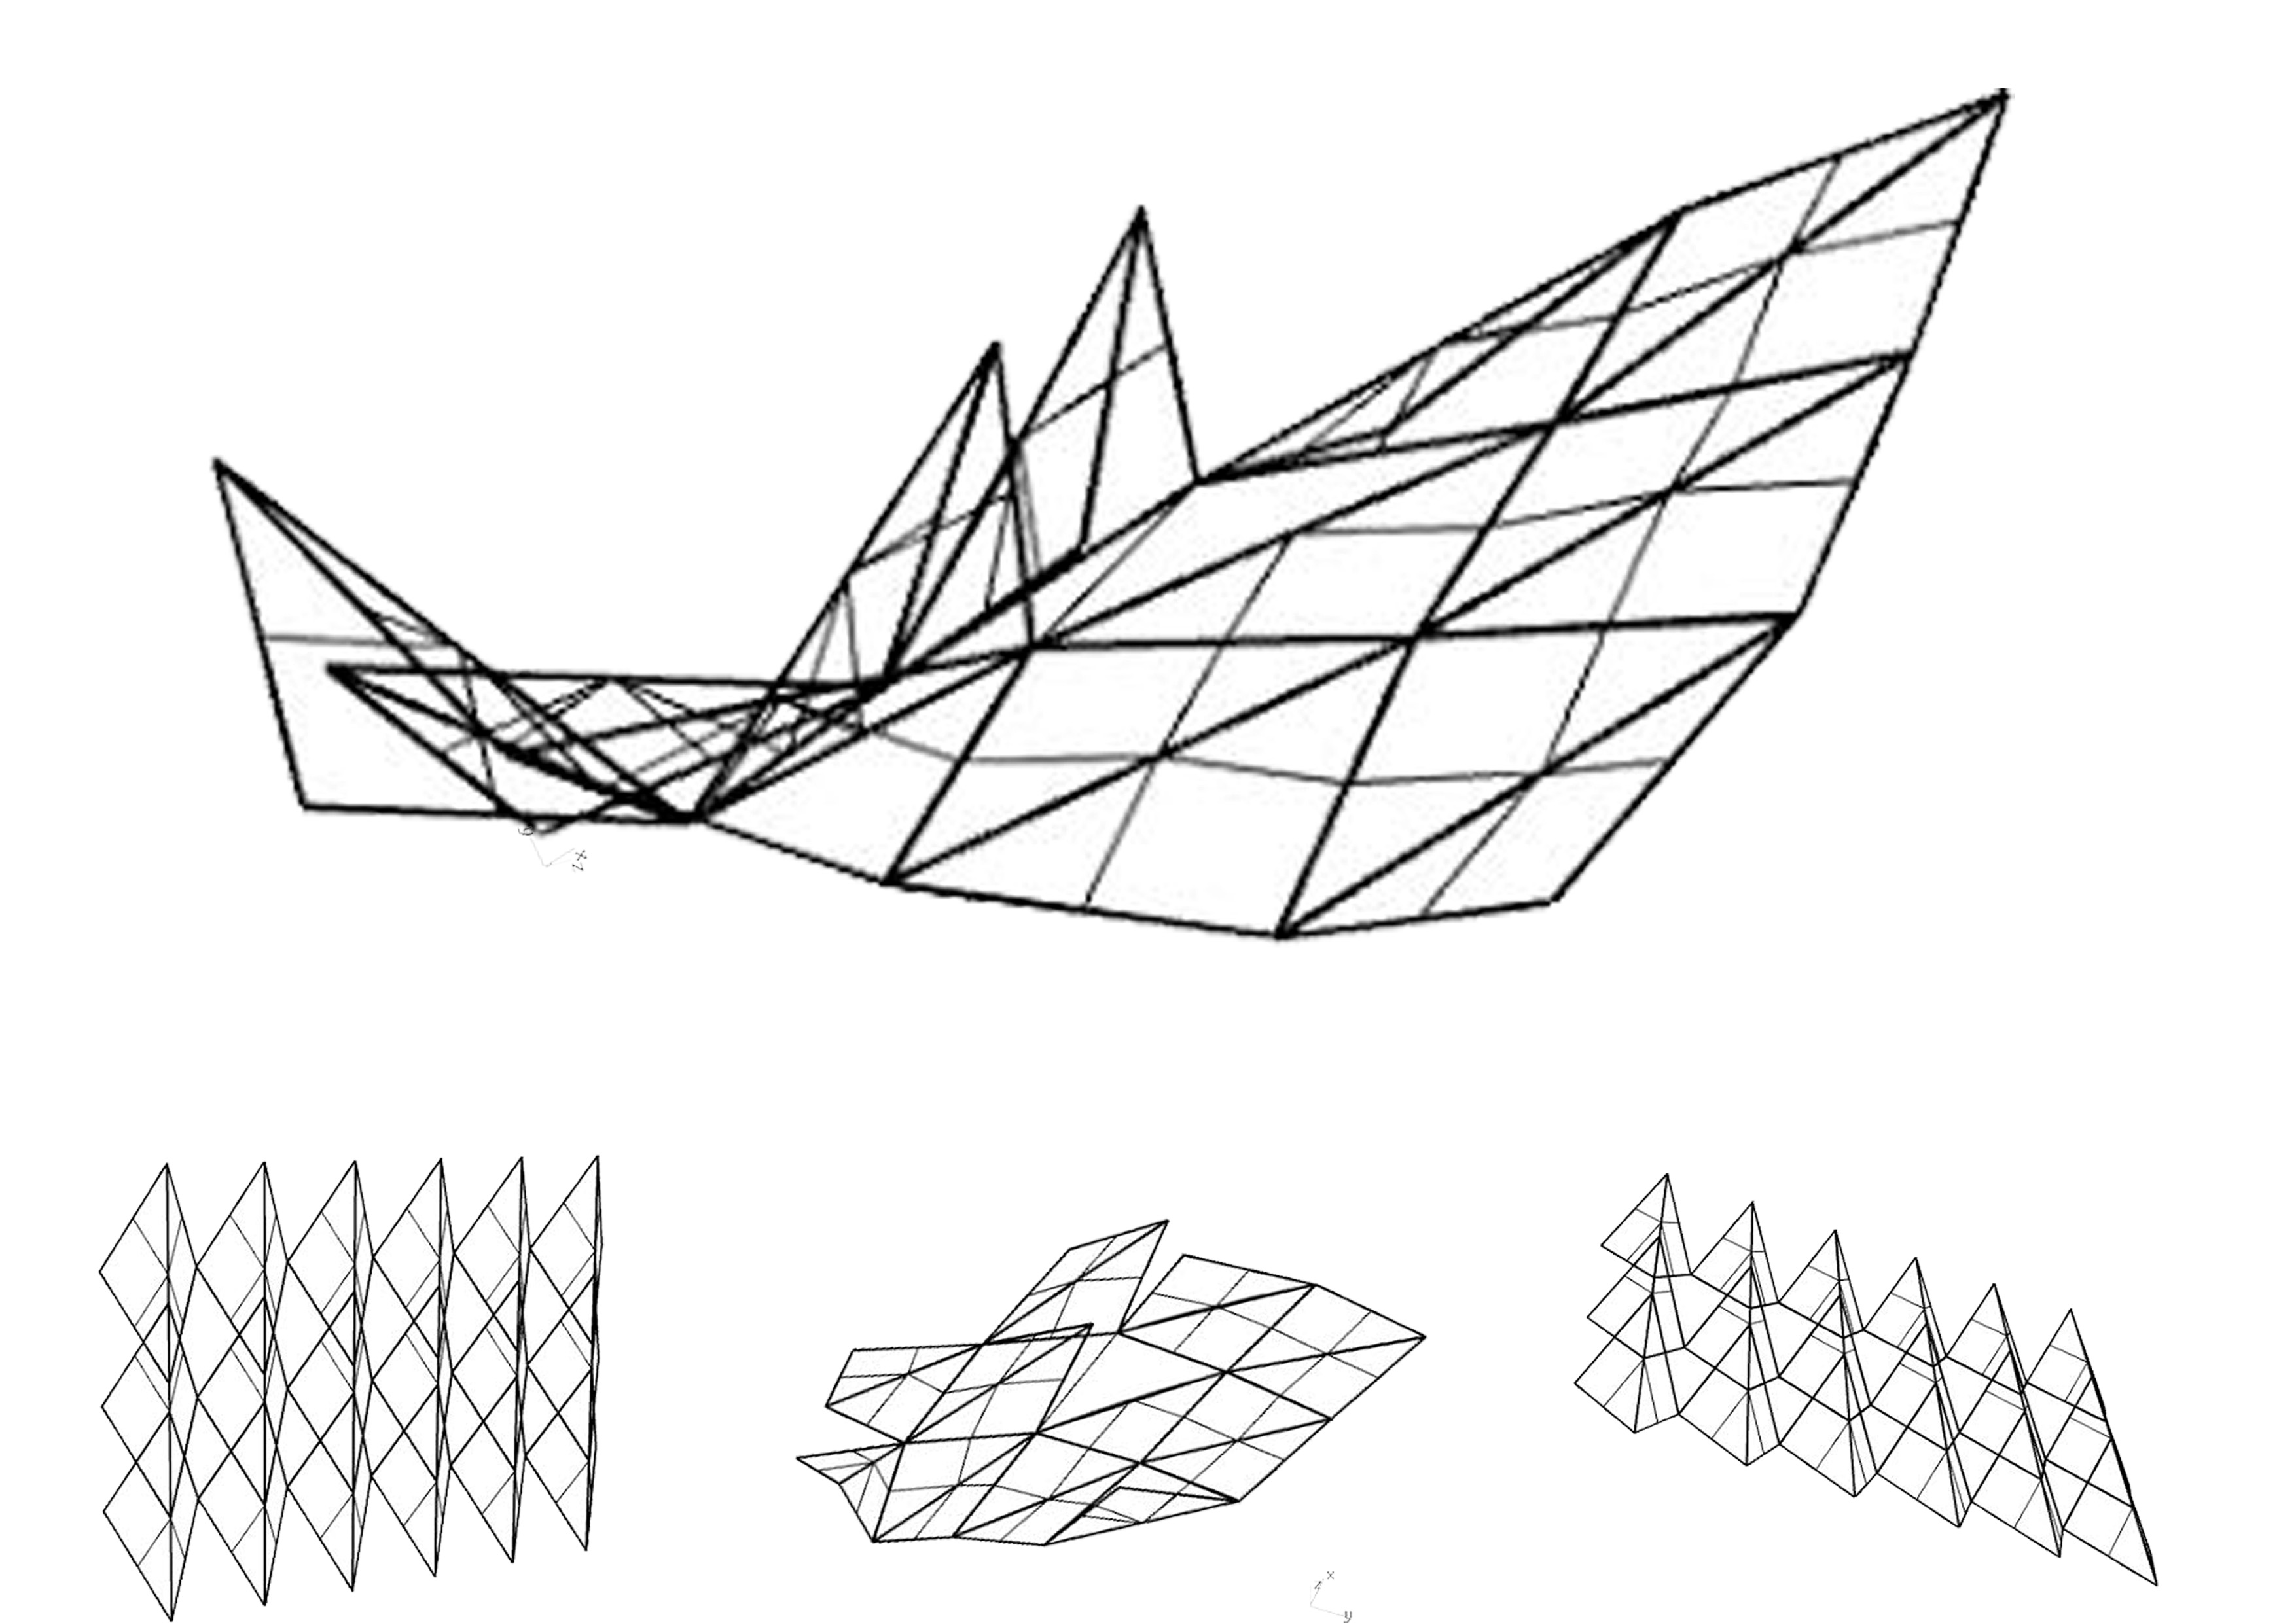 Structural folds